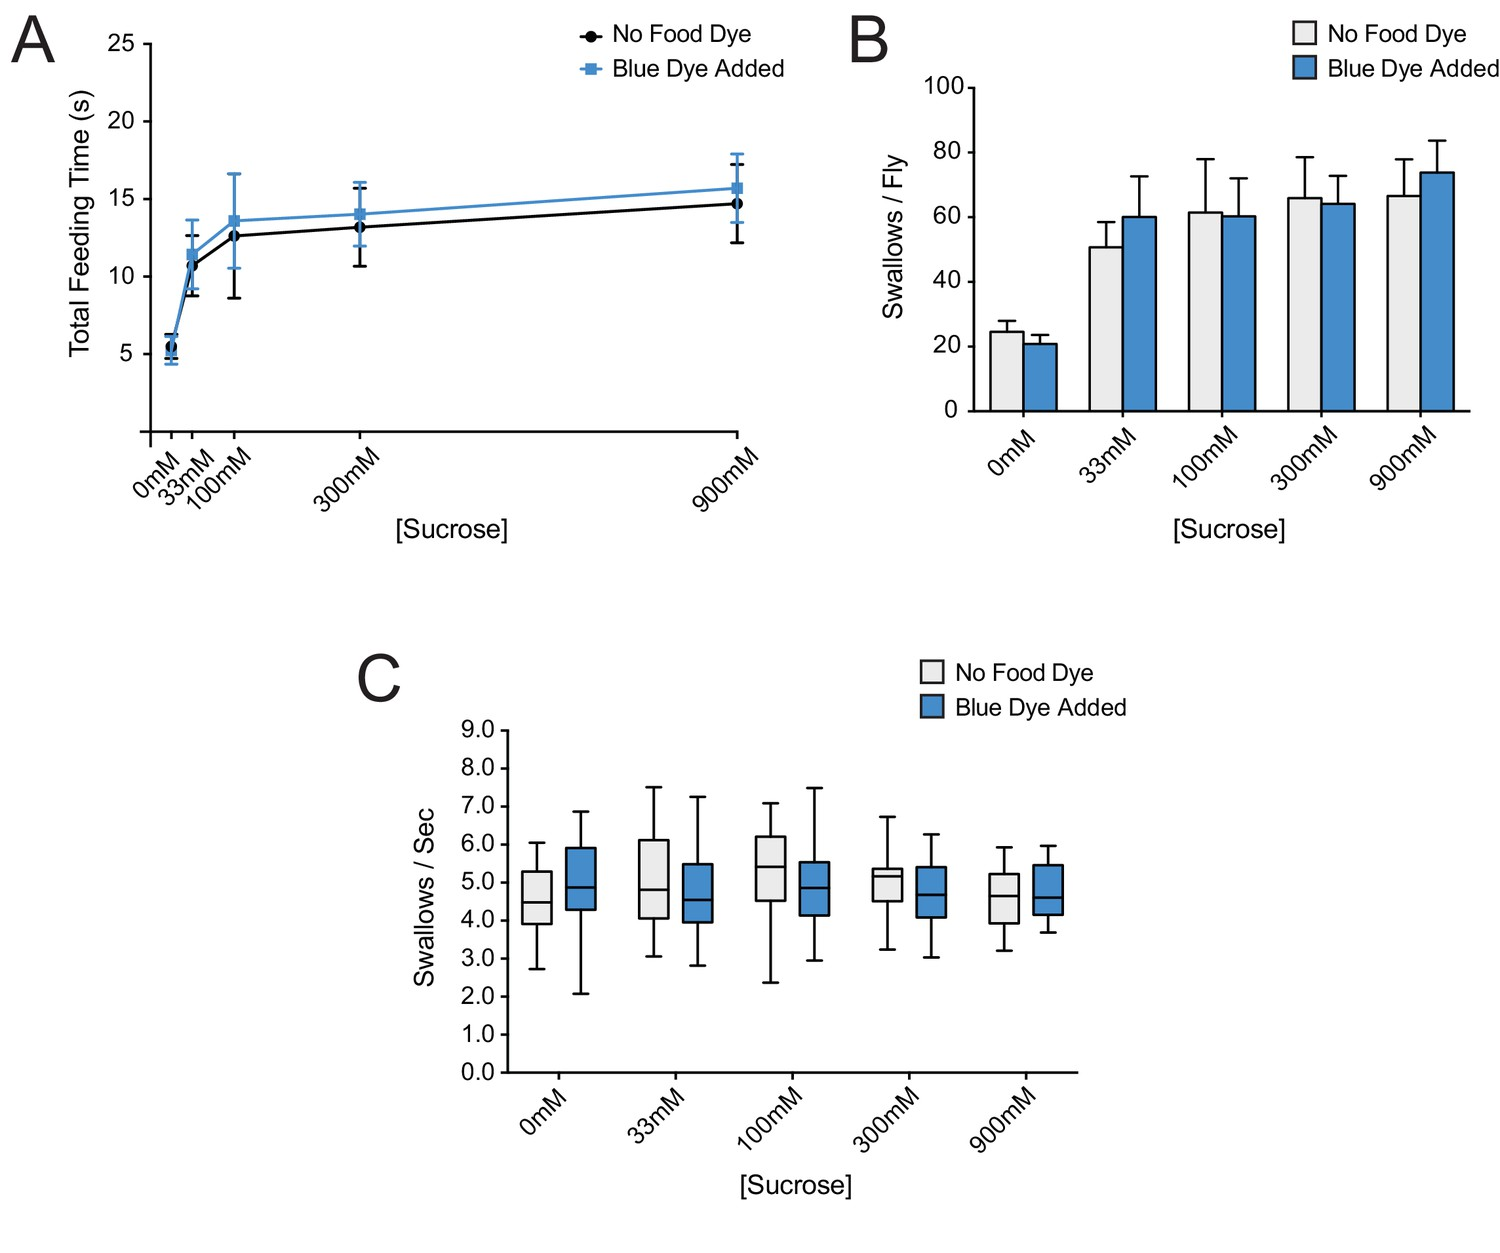 A Receptor And Neuron That Activate Circuit Limiting Sucrose Cheap Alcohol Tester Addition Of Erioglaucine Blue Dye To Food Does Not Affect Feeding Behaviors